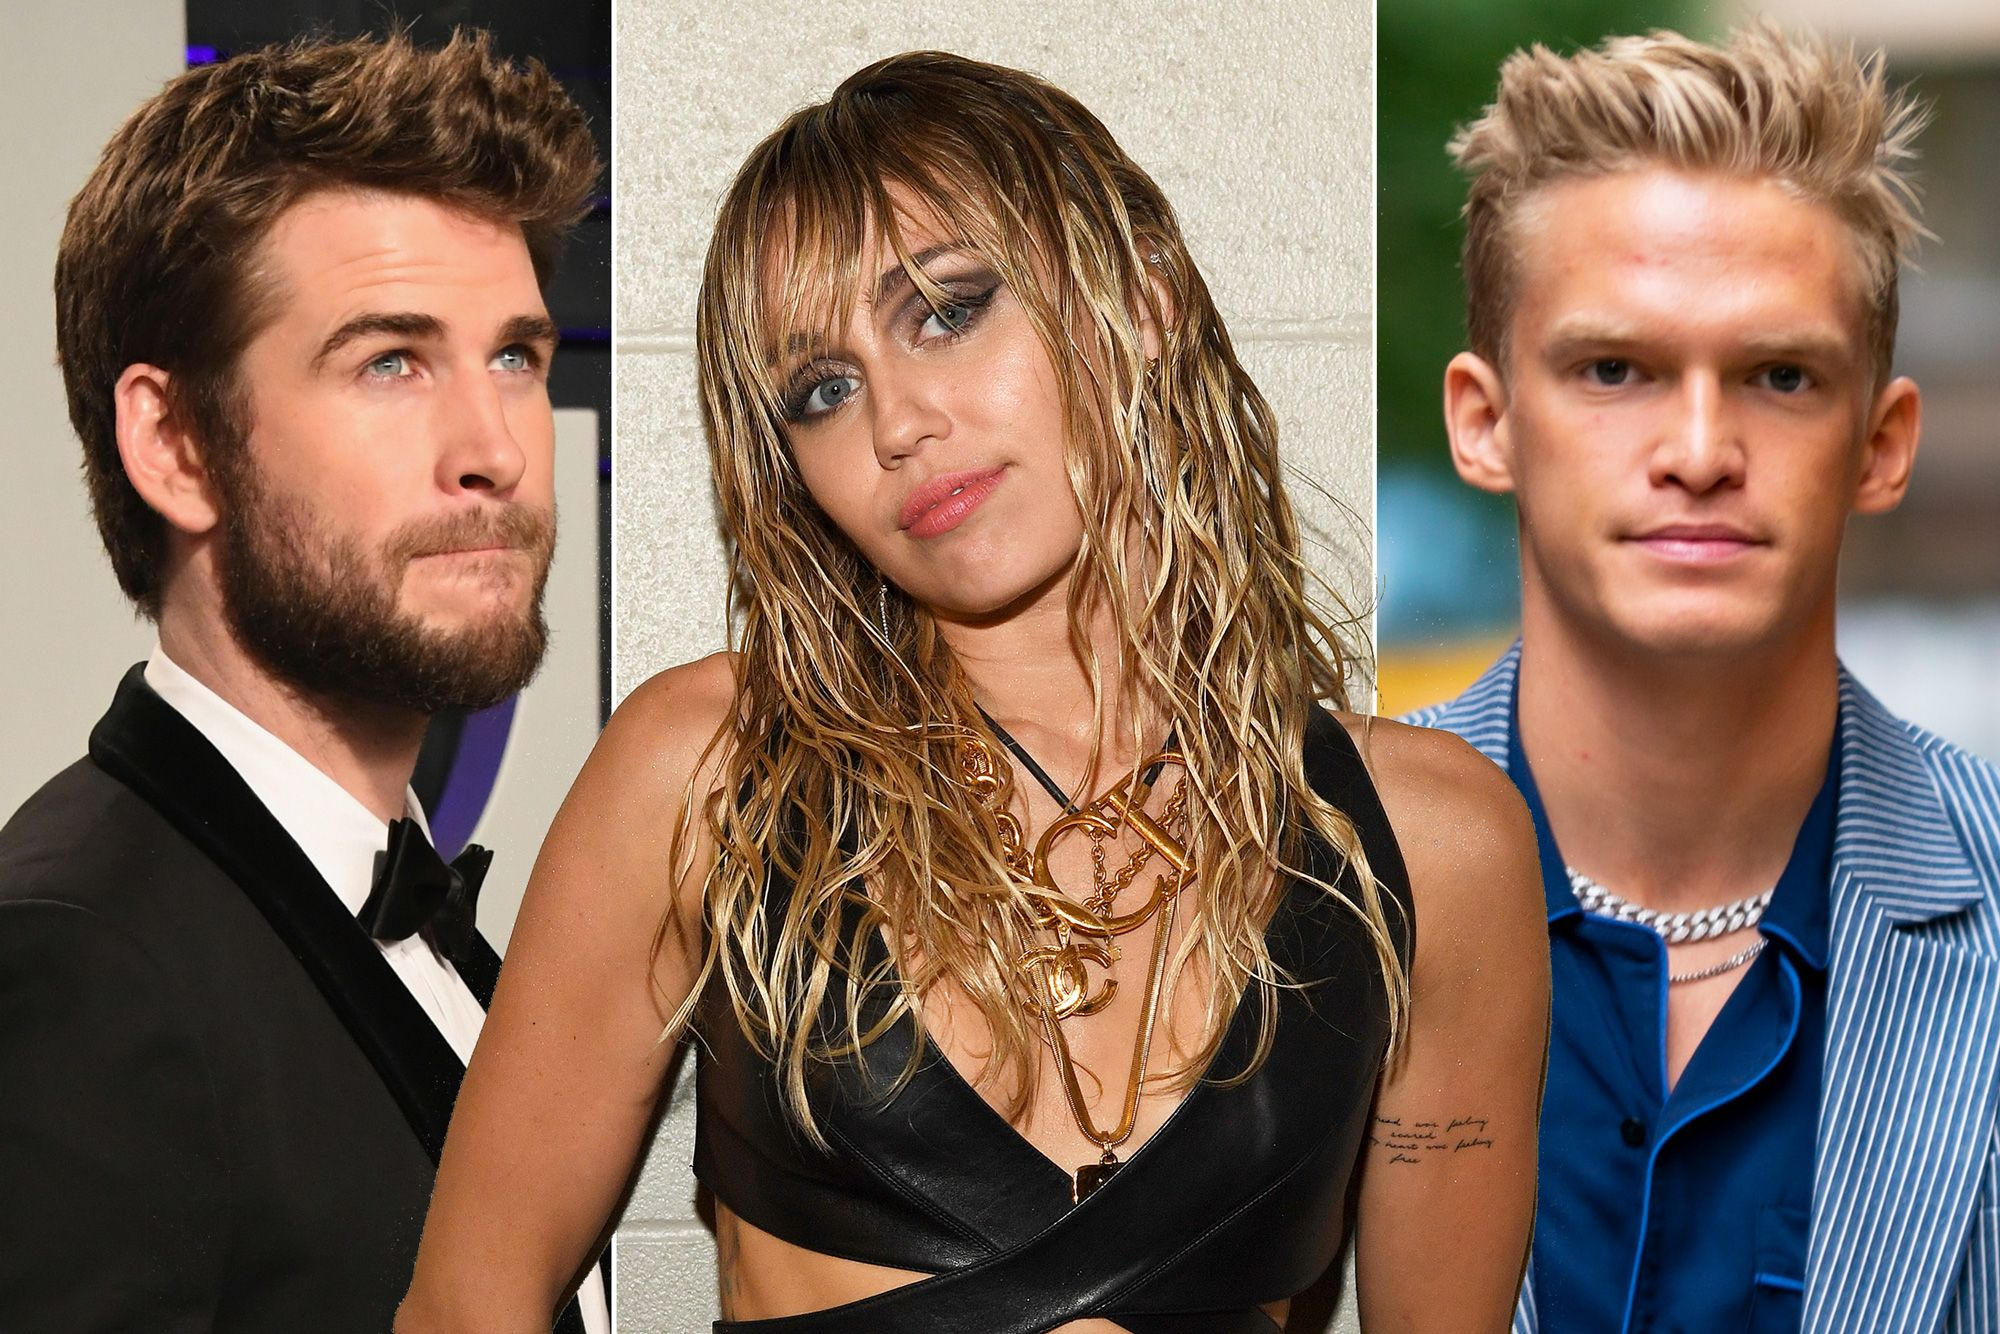 Miley Cyrus and Liam Hemsworth to Reconcile after Cody Simpson Split